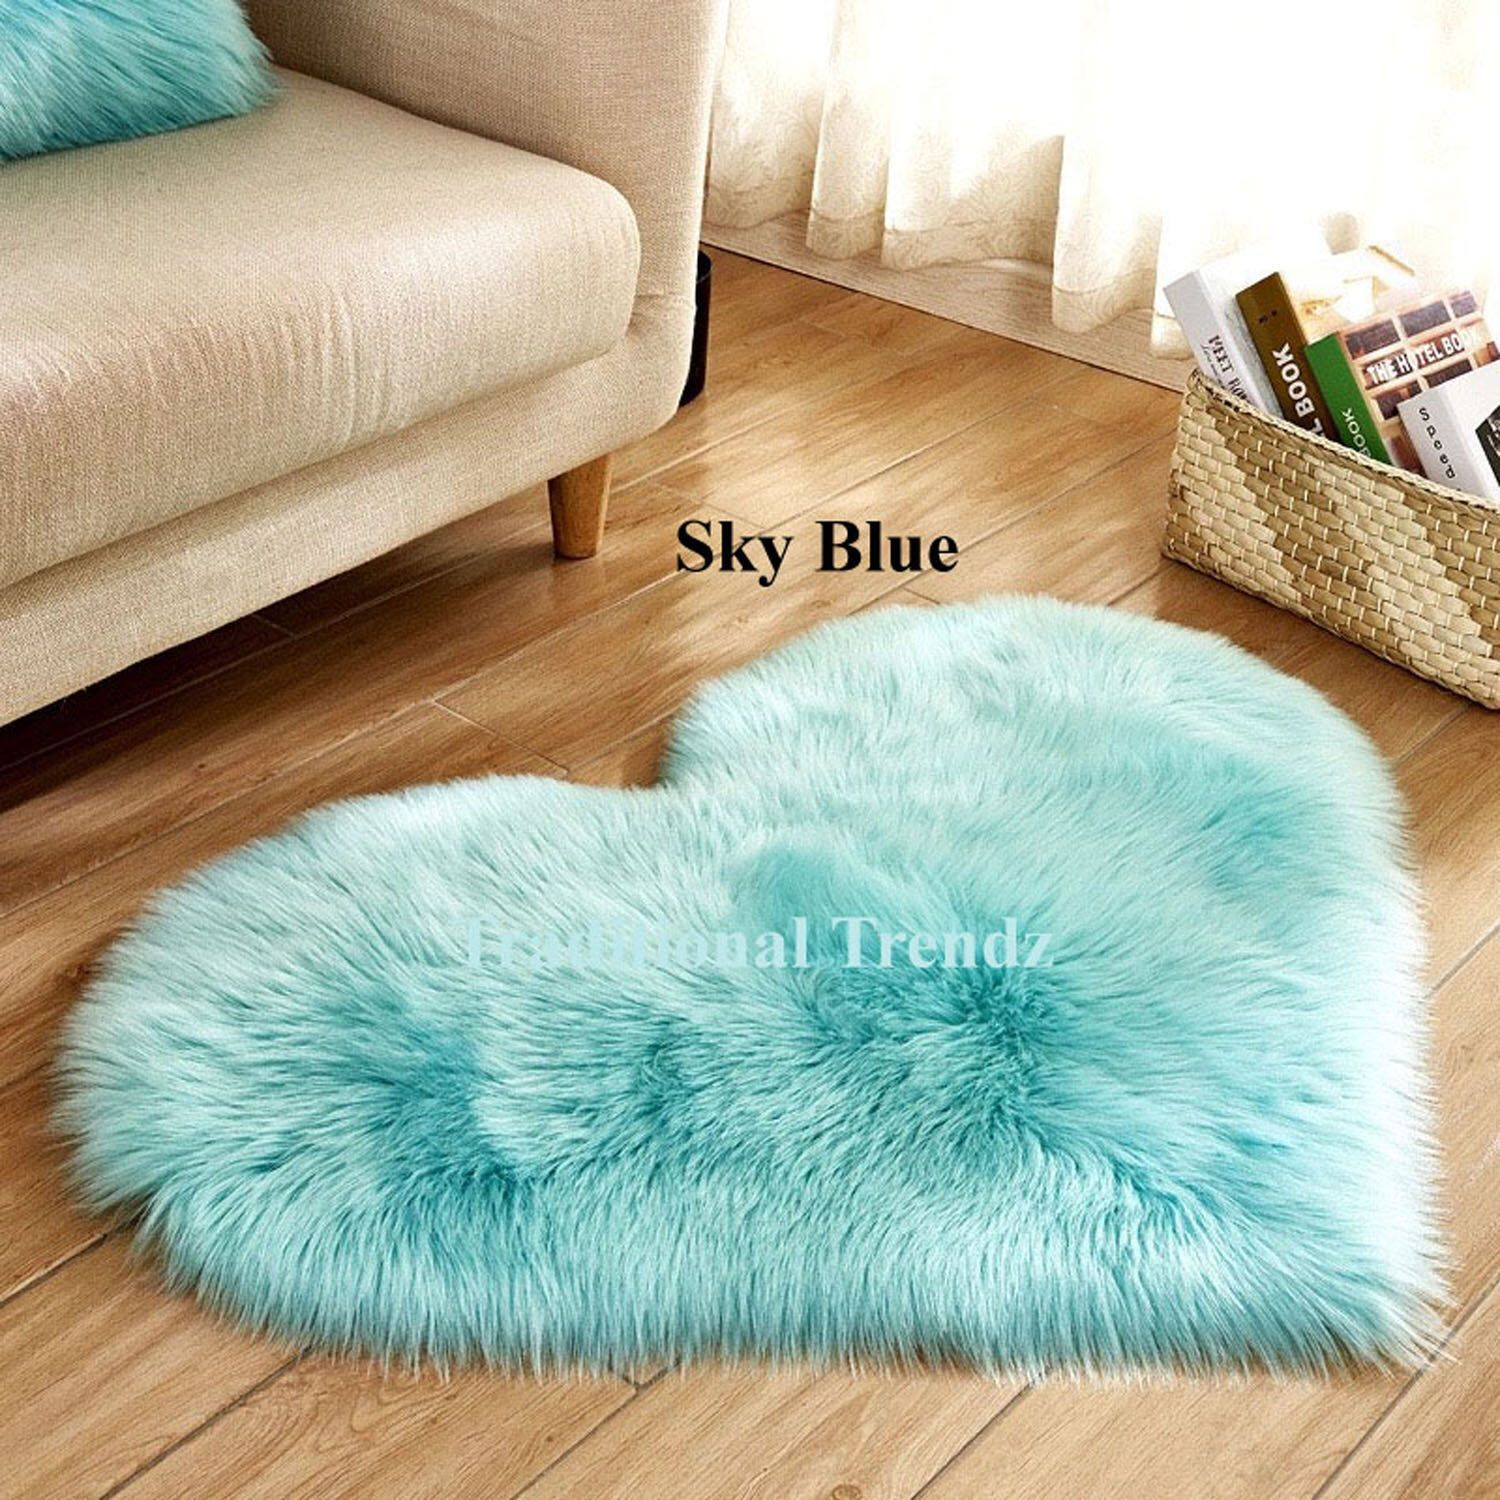 Heart Shaped Artificial Wool Sheepskin Rug Hairy Faux Floor Mat Fur Plain Fluffy Soft Area Rug For Living Room Bedr In 2020 Soft Carpet Plush Carpet Living Room Carpet #soft #area #rug #for #living #room